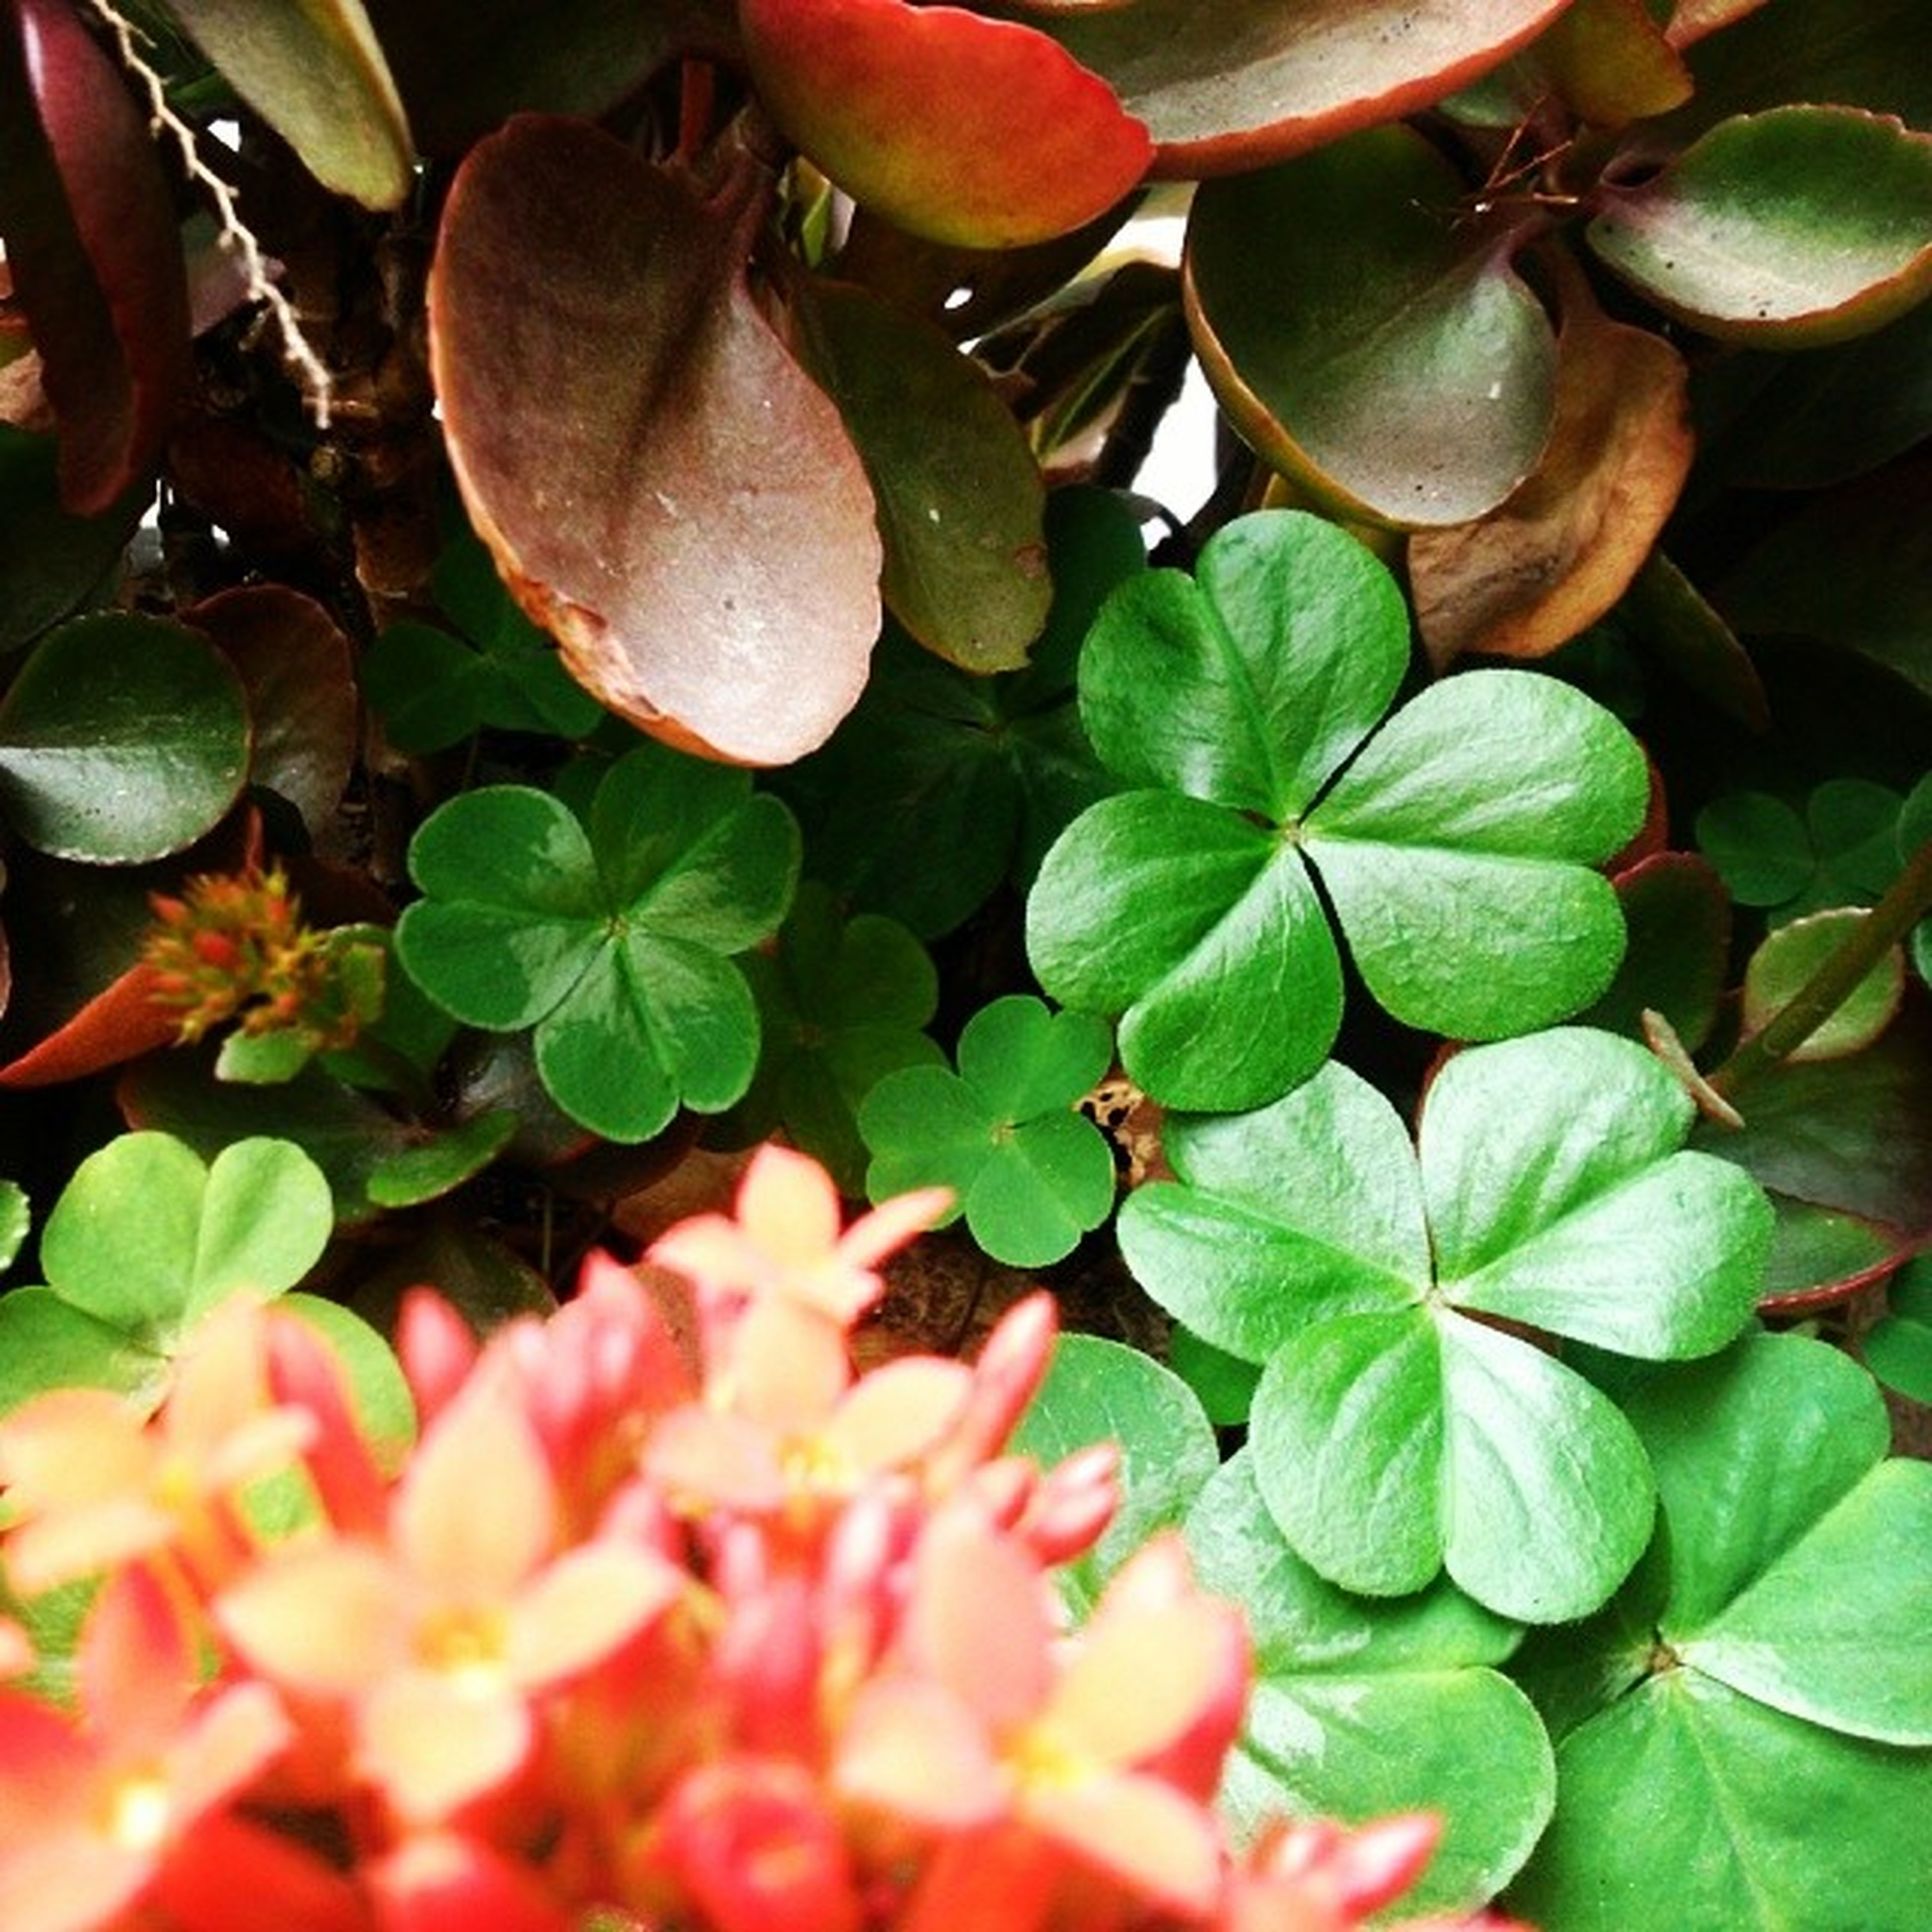 leaf, growth, plant, freshness, full frame, nature, backgrounds, beauty in nature, fragility, close-up, green color, leaves, red, flower, high angle view, natural pattern, botany, succulent plant, leaf vein, growing